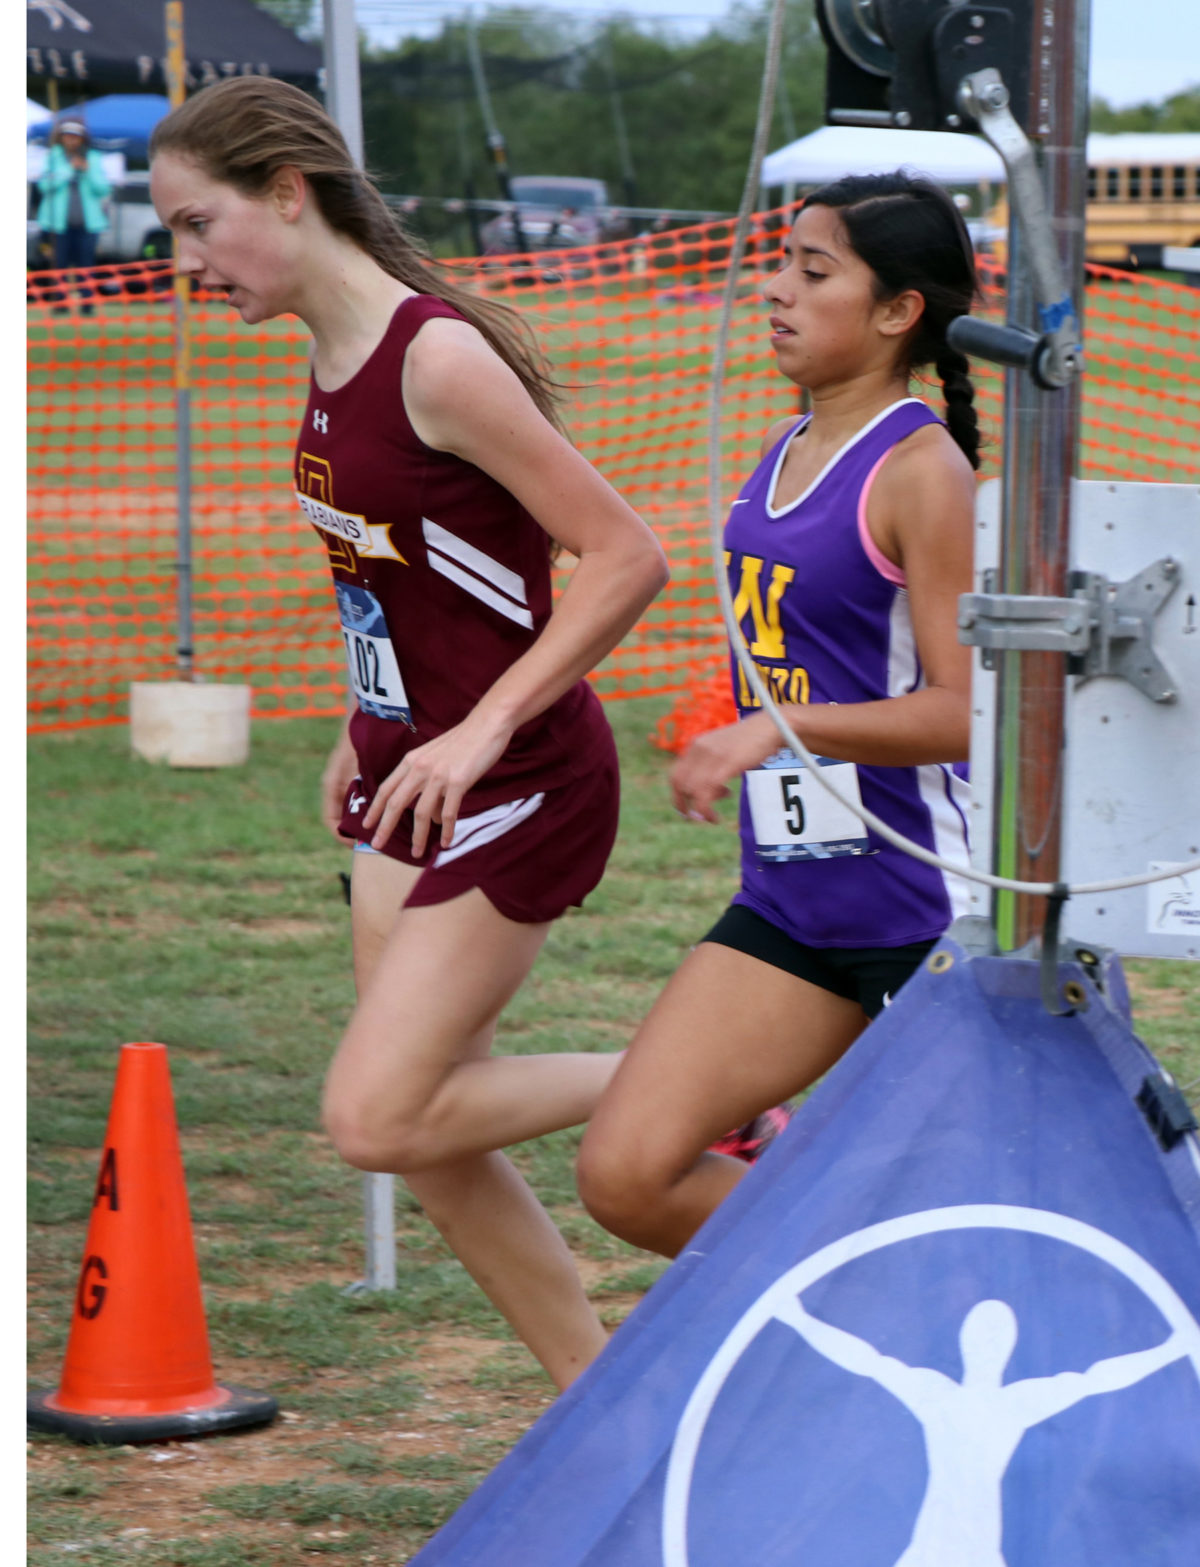 Timing, filming errors cost Runyan 1st place in District XC meet